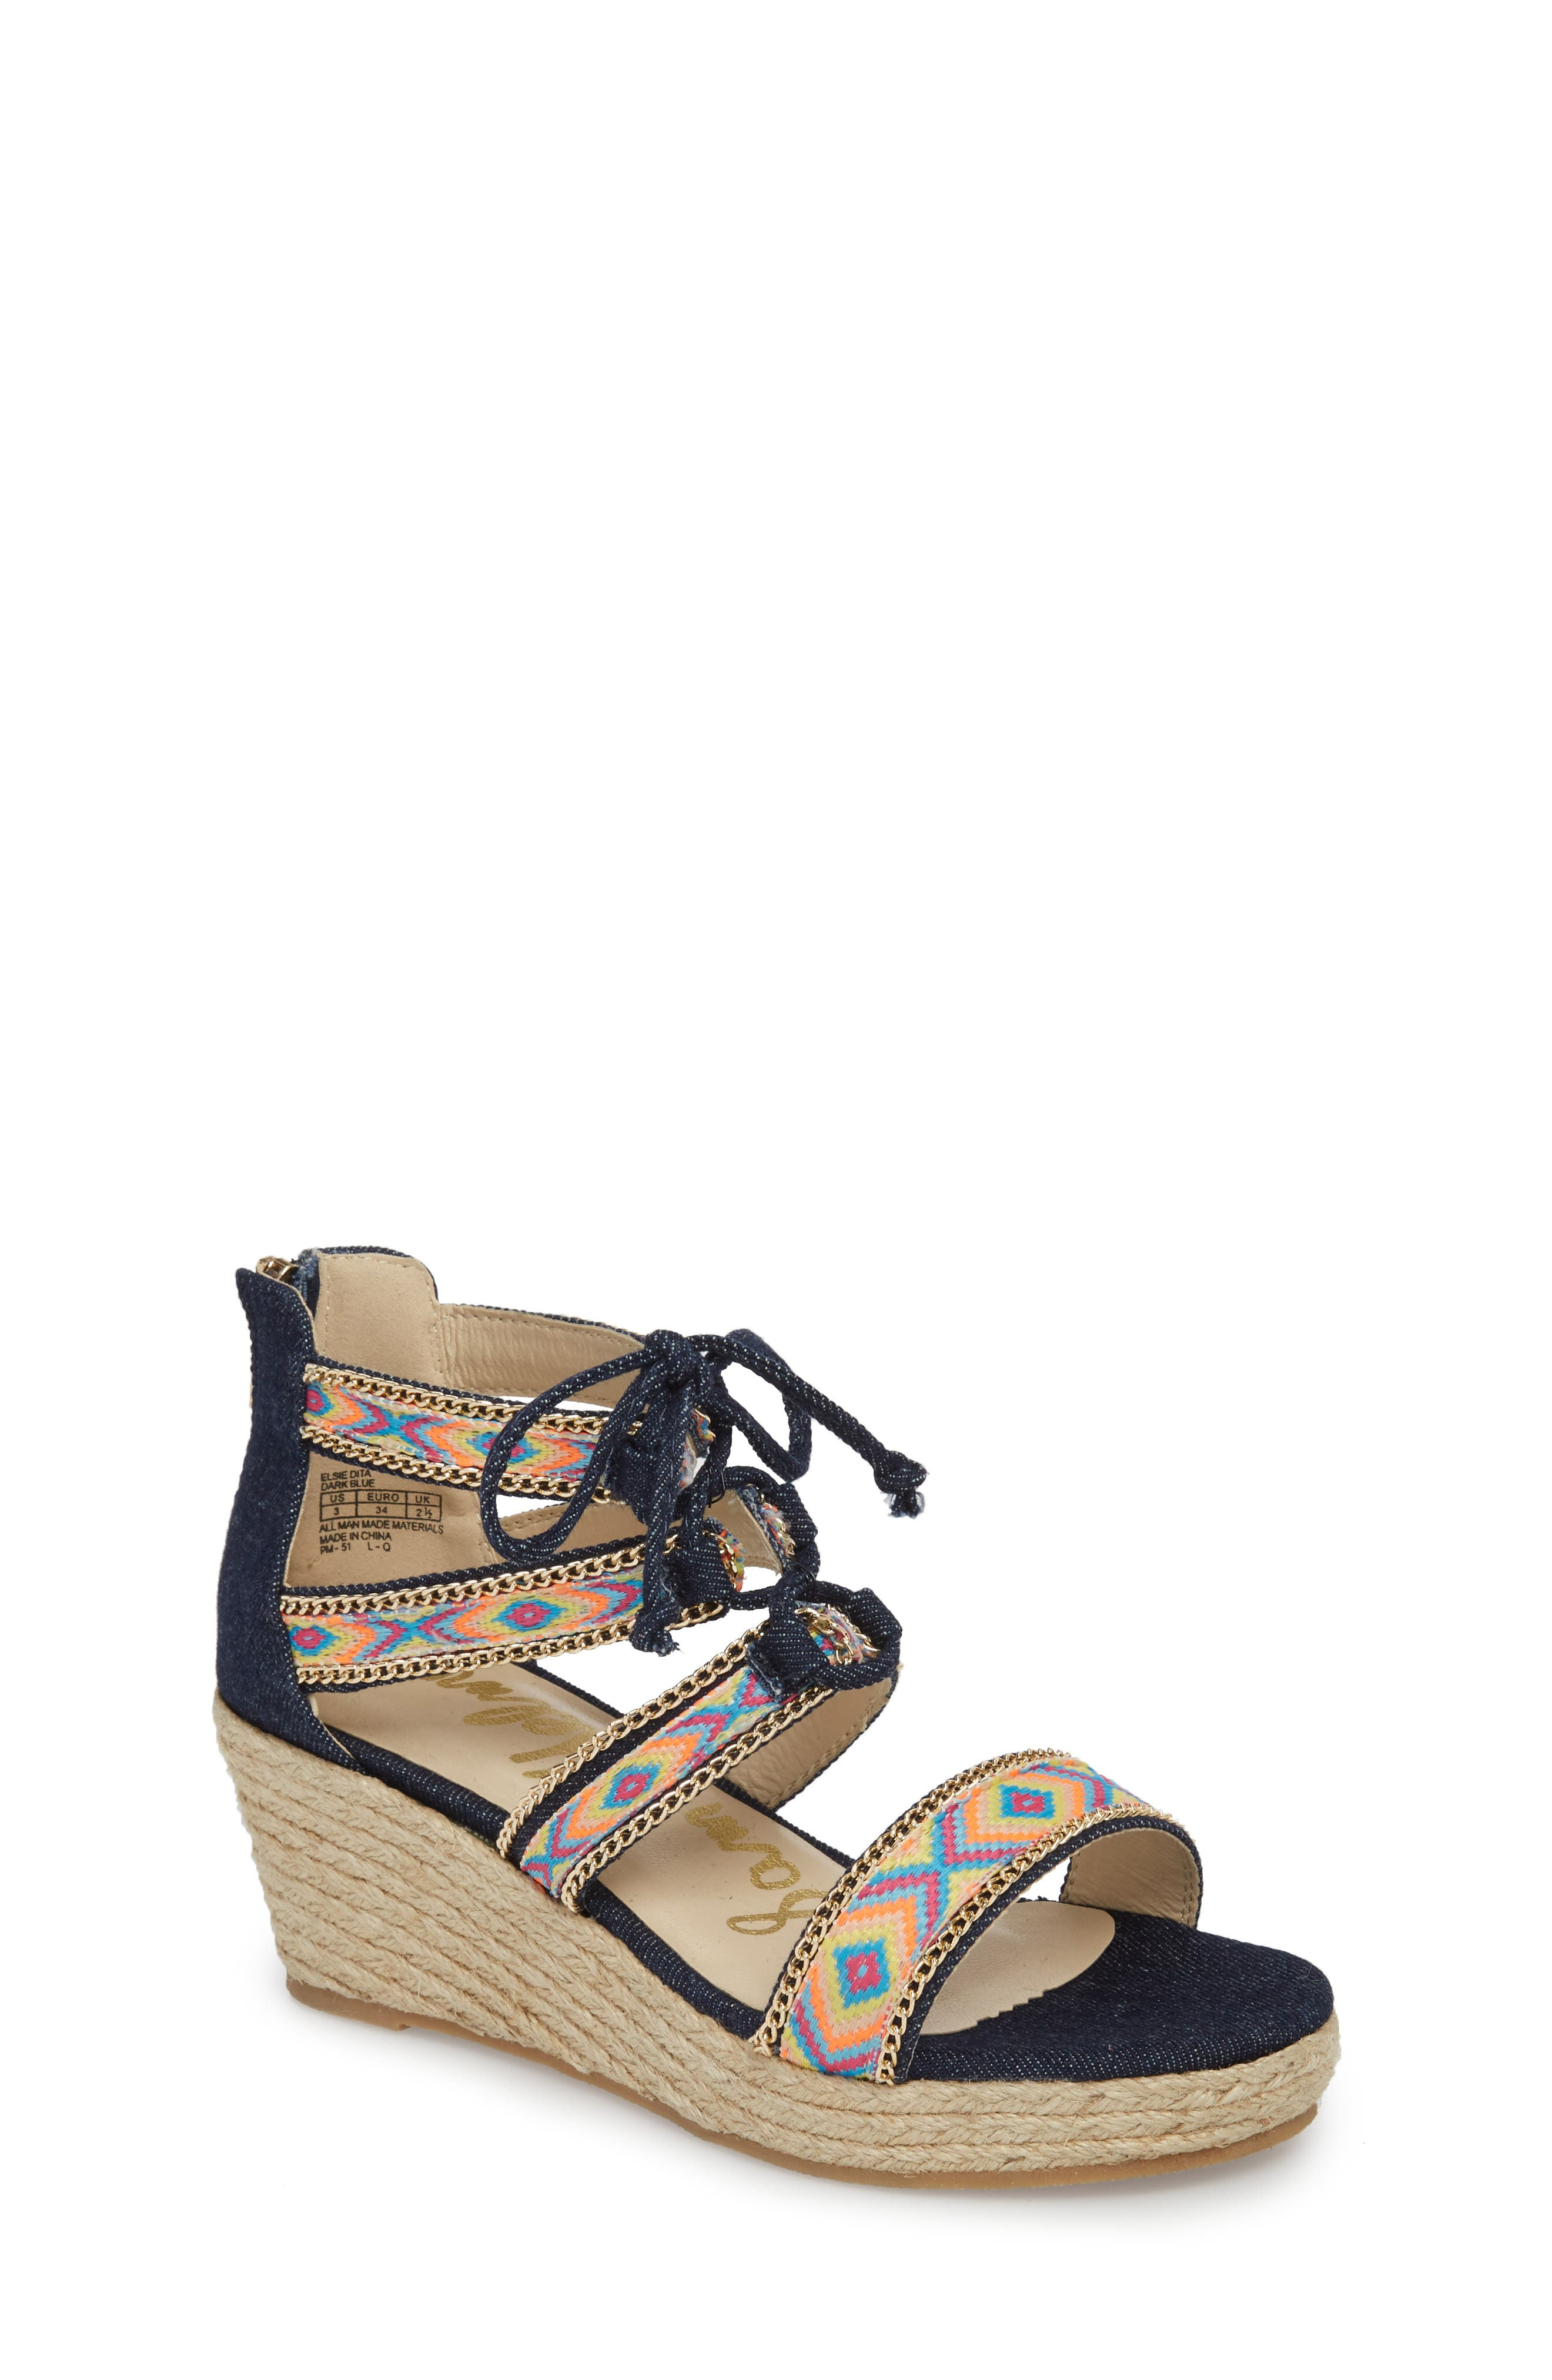 Elsie Dita Wedge Sandal,                         Main,                         color, Dark Blue Fabric